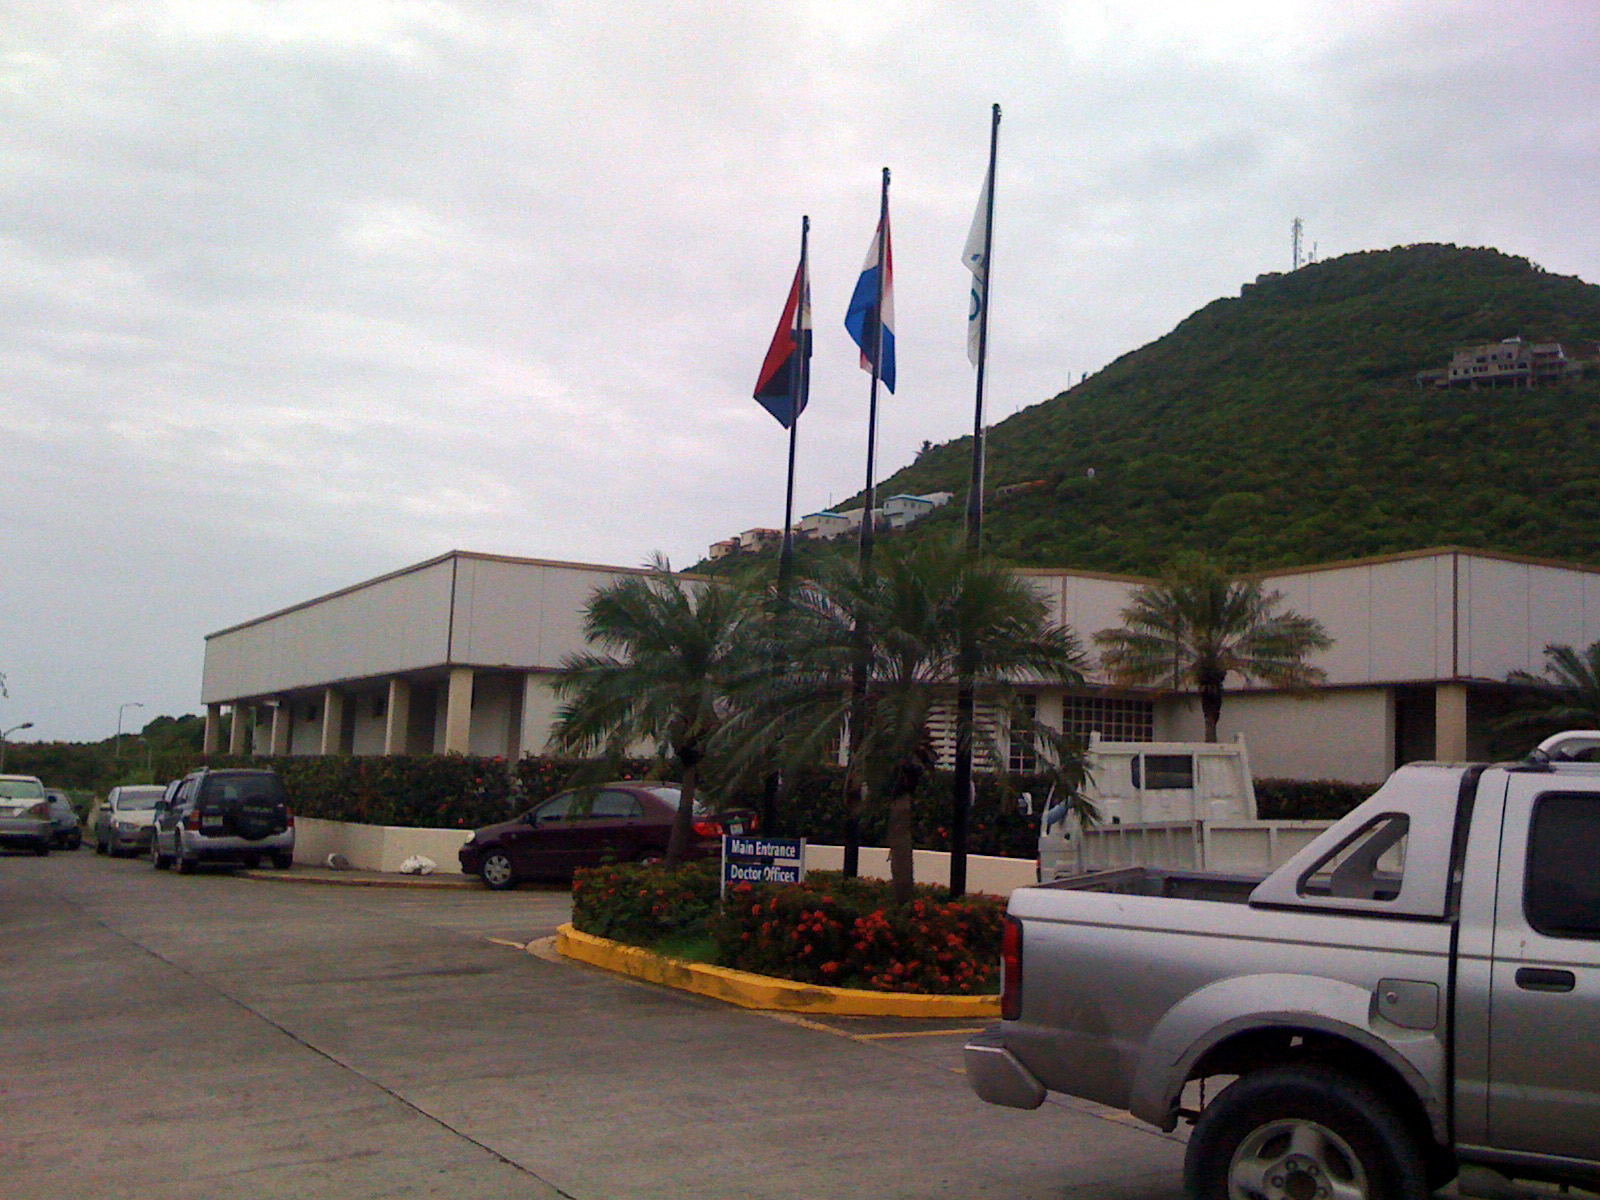 Entrance to St. Maarten Medical Center